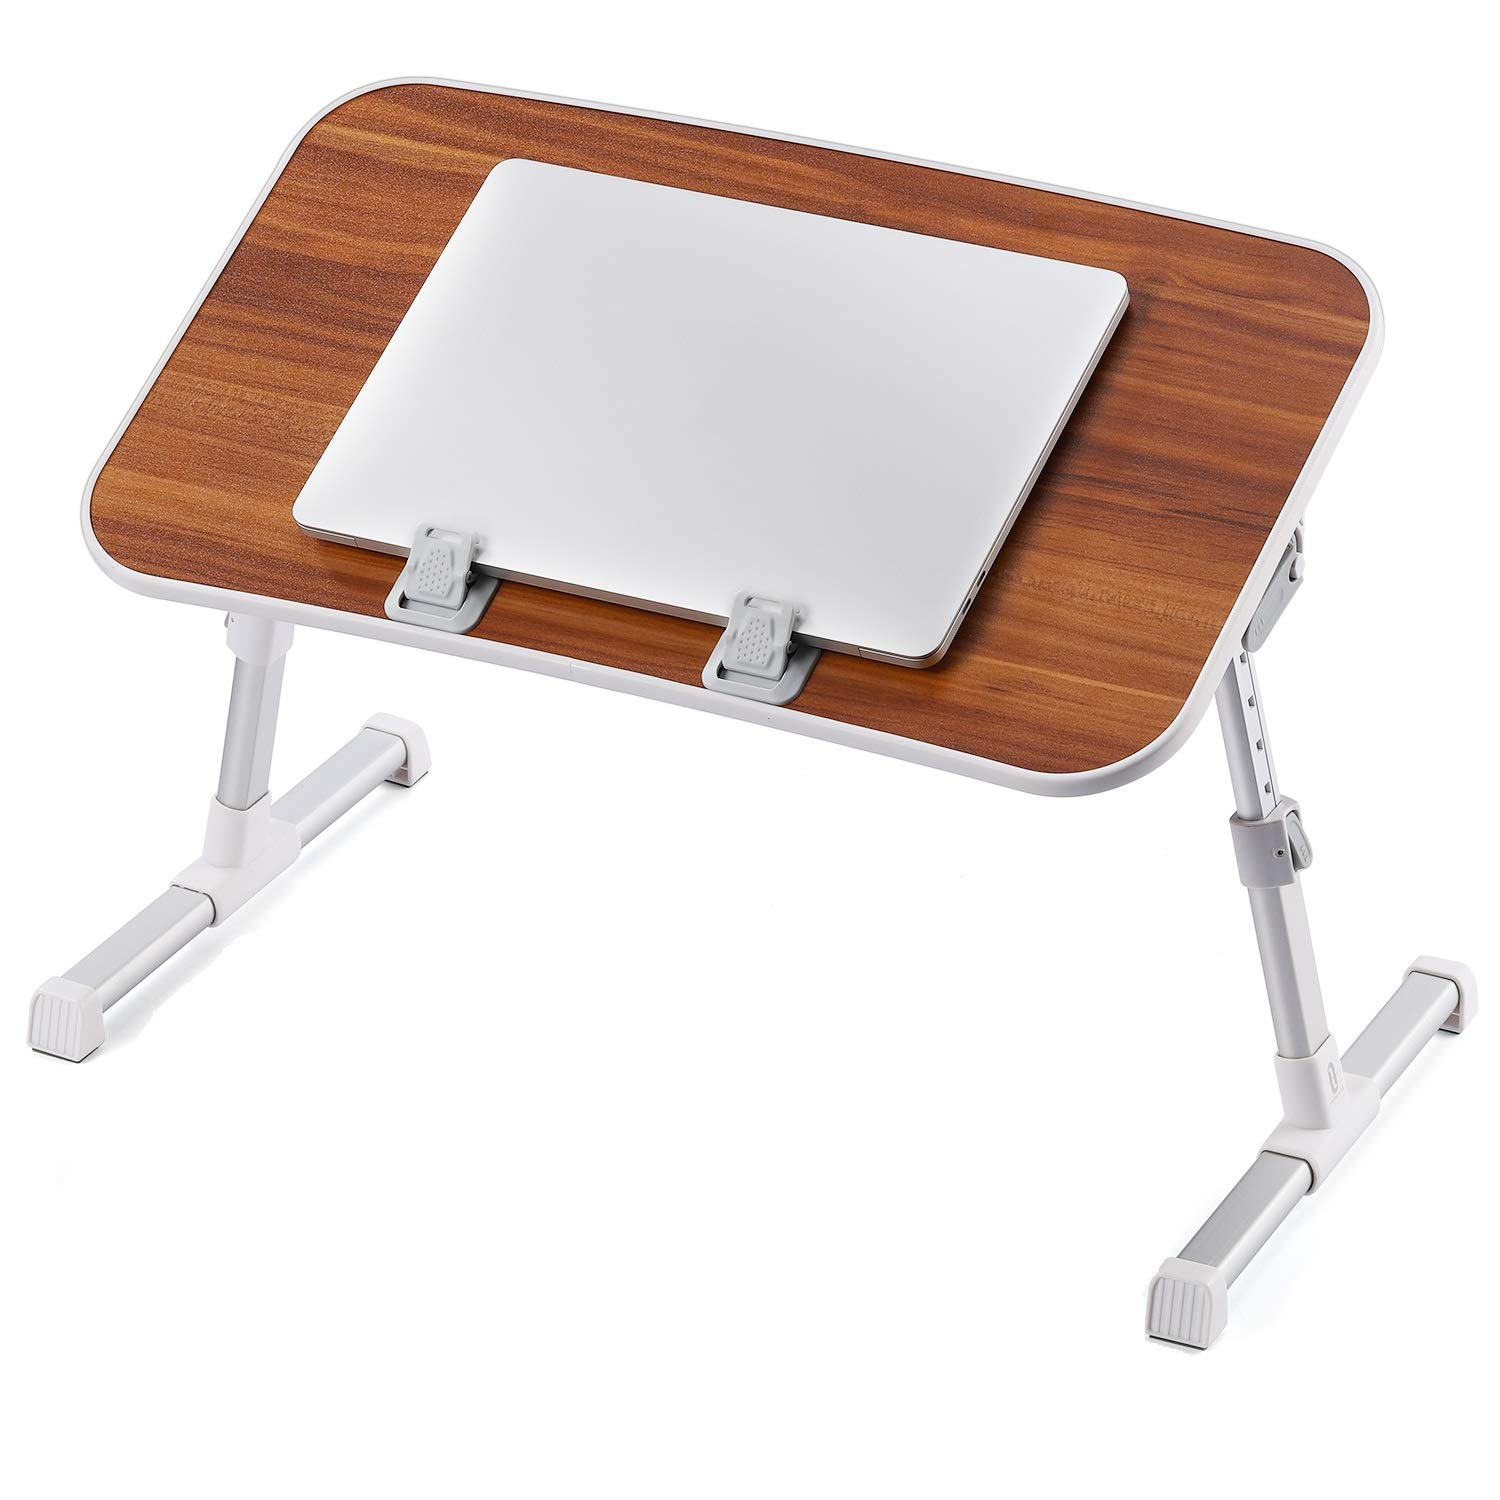 Laptop Tables Laptop Desk for Bed, TaoTronics Lap Desks Bed Trays for Eating and Laptops Stand Lap Table, Adjustable Computer Tray for Bed, Foldable Bed Desk for Laptop Writing Sofa Couch